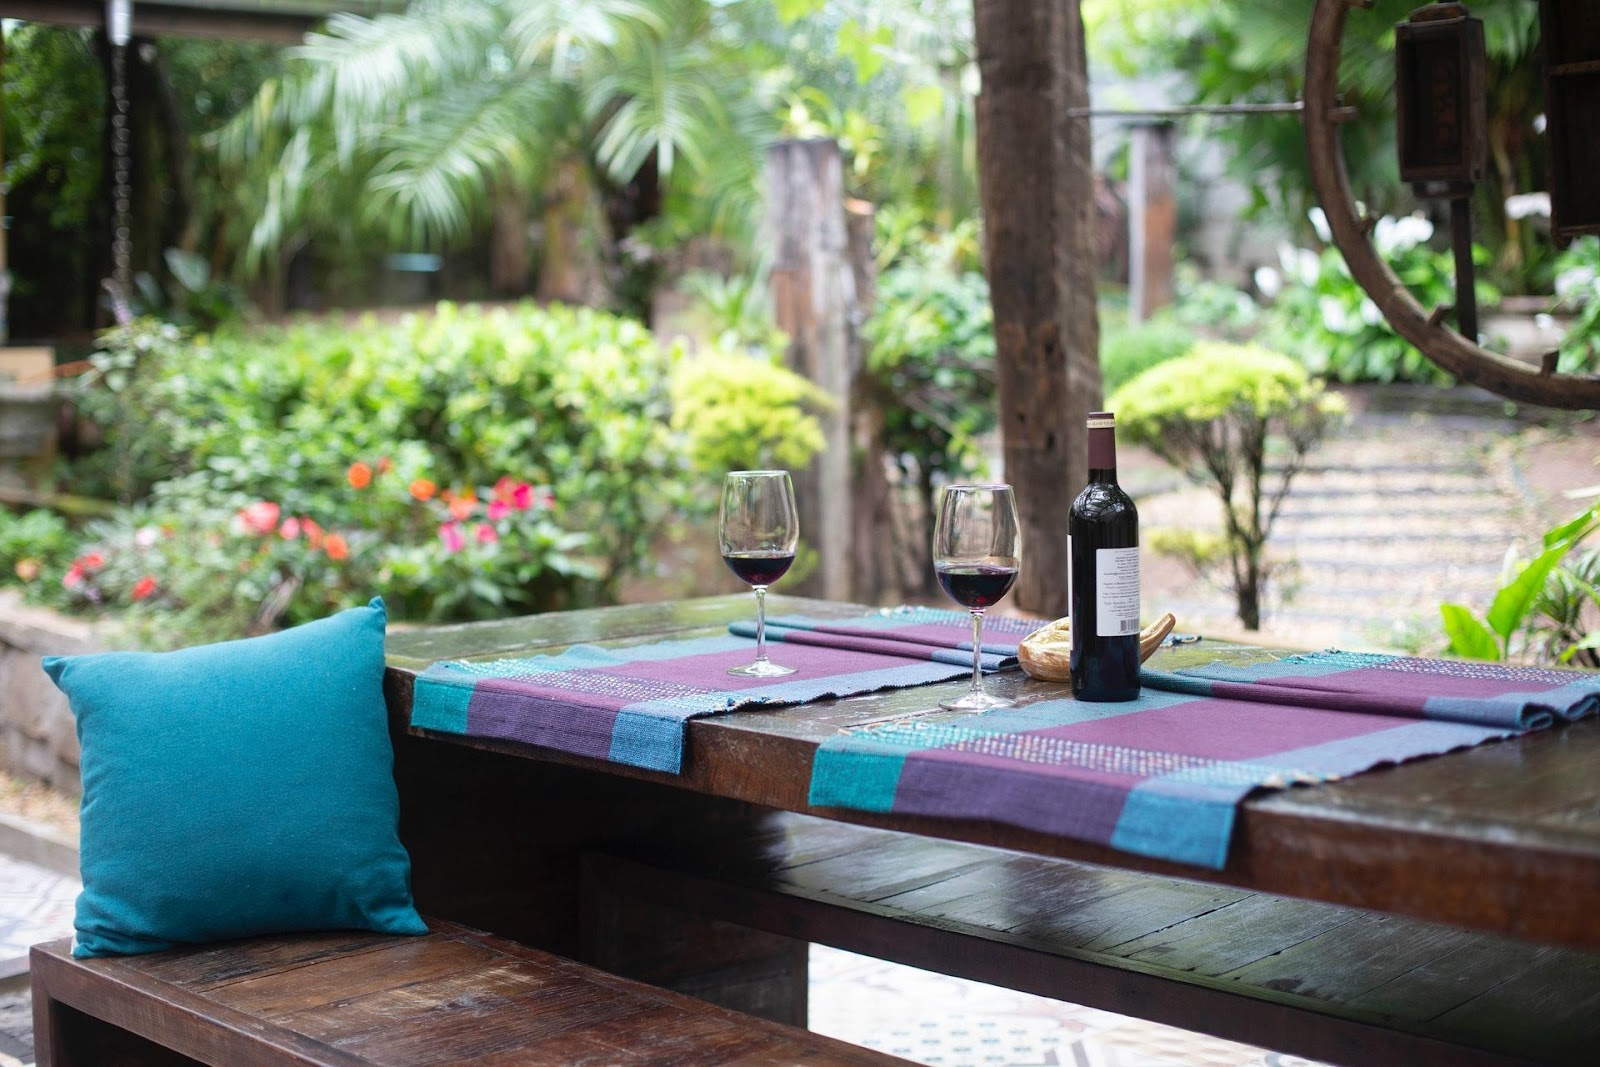 A bottle of wine and glasses on a table in an outside sitting area.